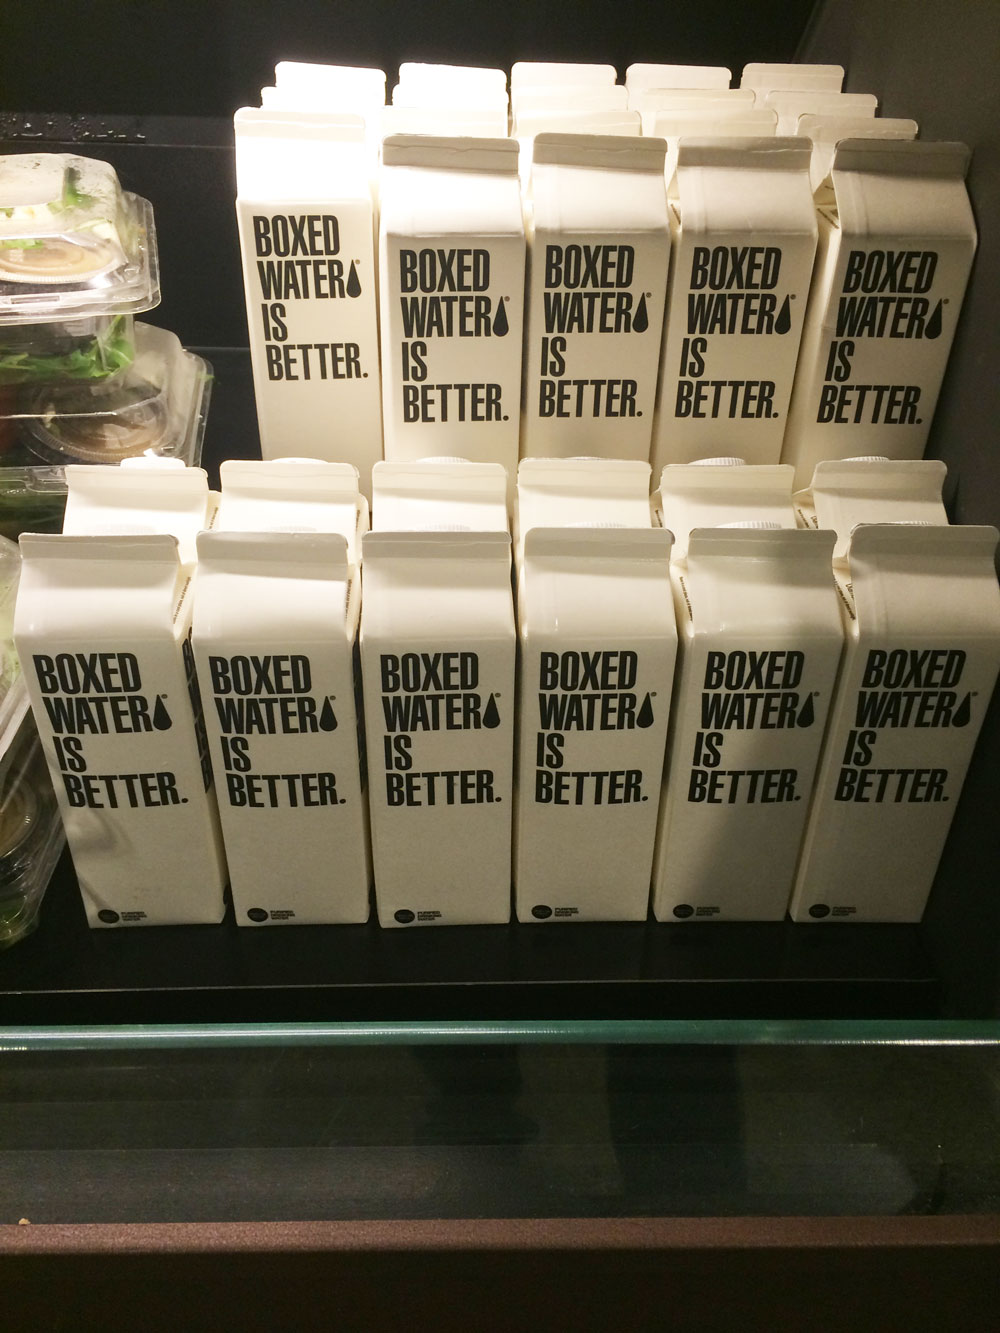 Did you know that boxed water is a thing? Me either.